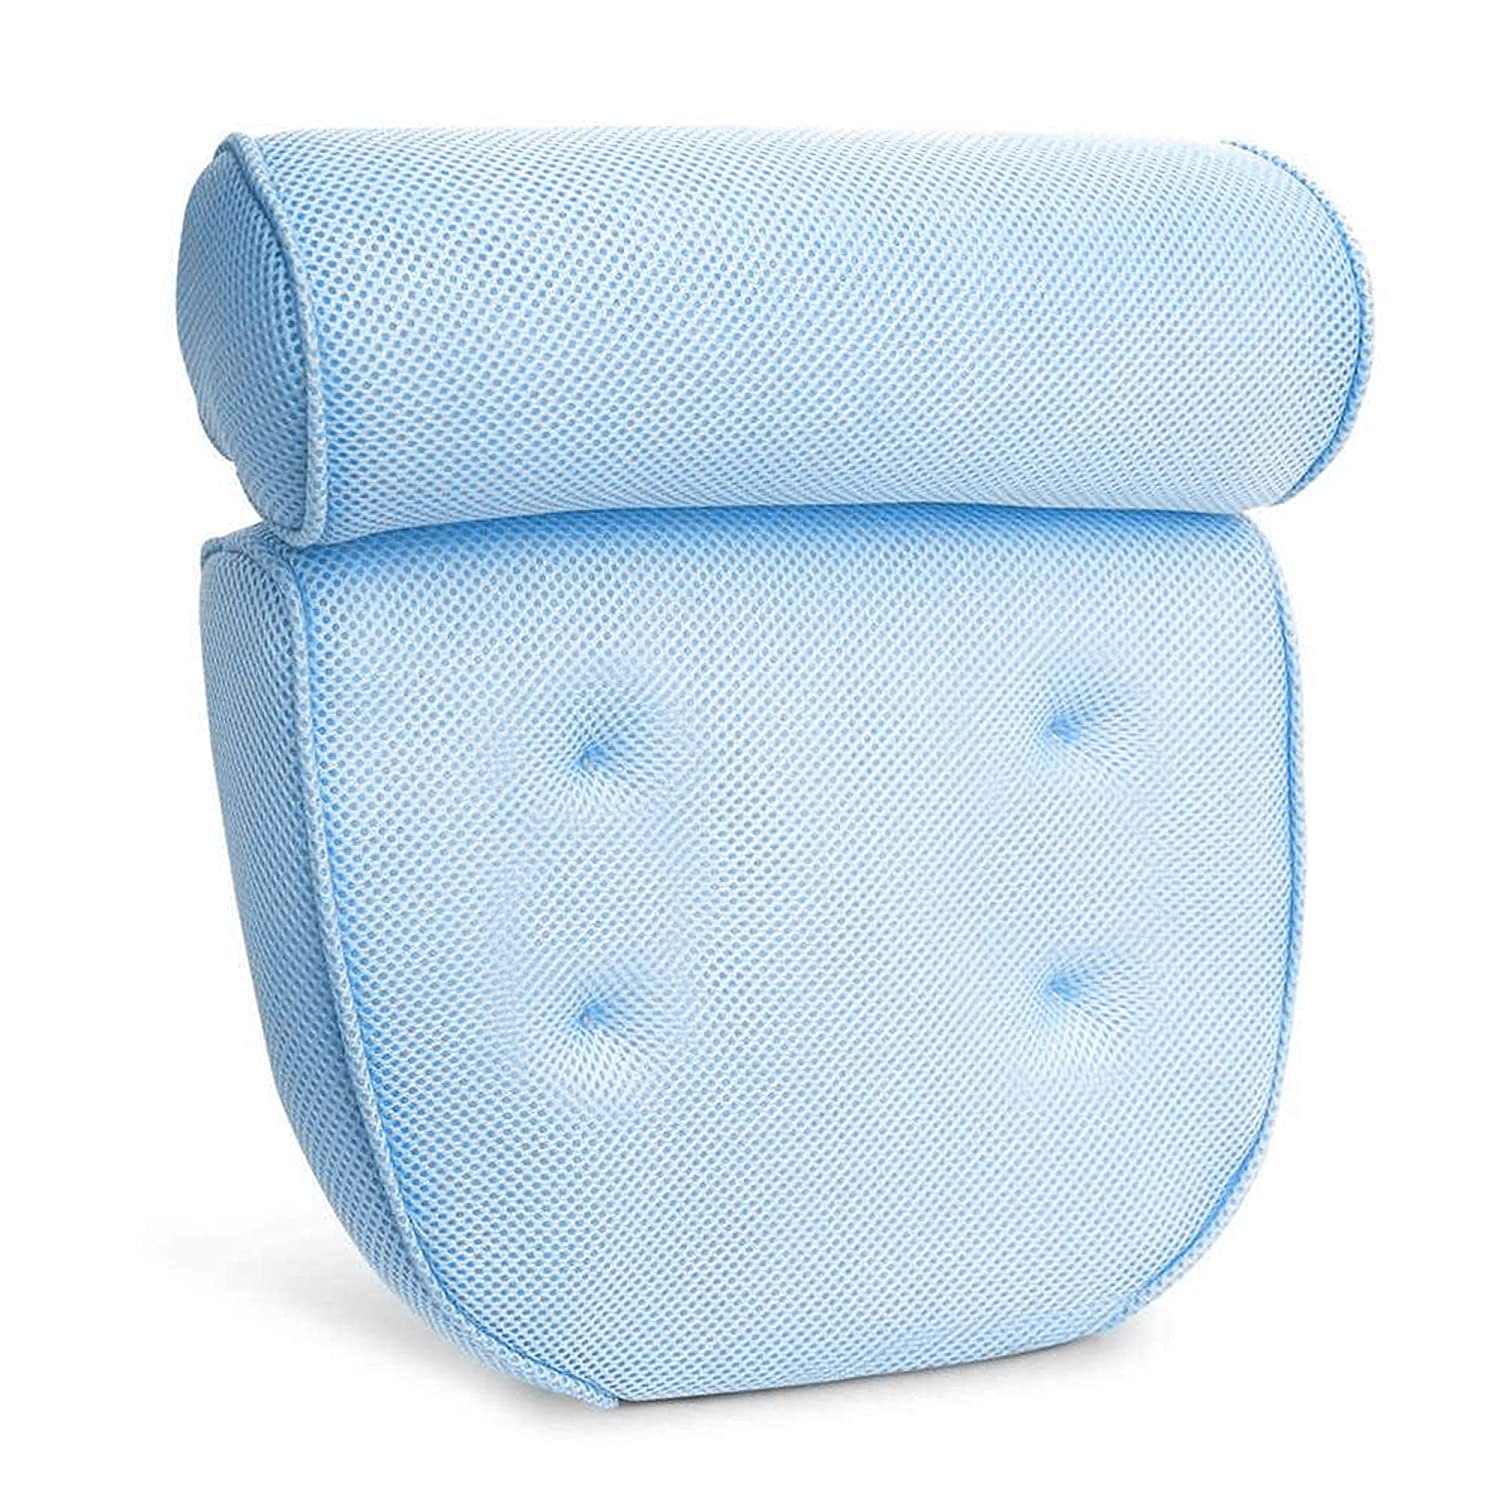 Bath Pillows For Tub Neck Support – Waterproof Bath Tub Pillow Rest for Neck and Shoulder Jacuzzi Spa Bathtub Cushion Headrest KP SOLUTION